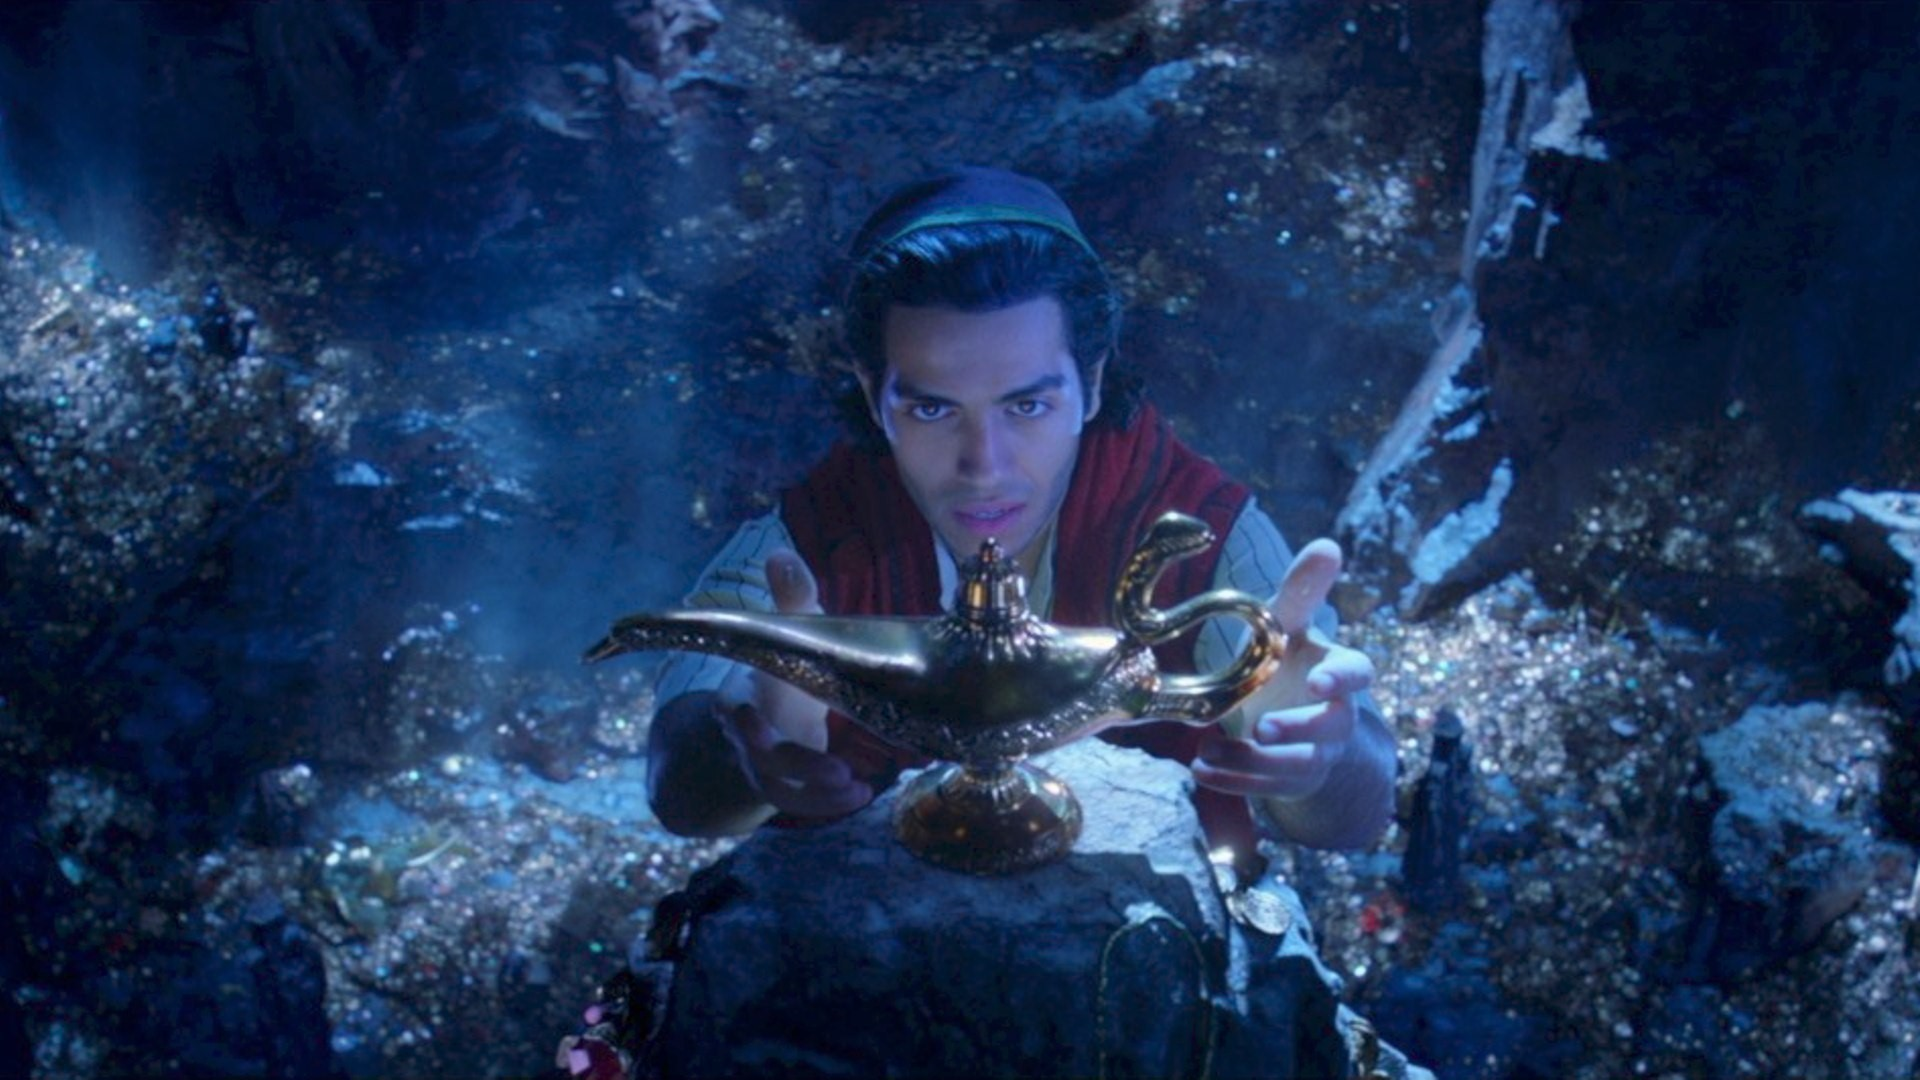 Mena Massoud as Aladdin in 2019 Film Aladdin HD Wallpapers 1920x1080